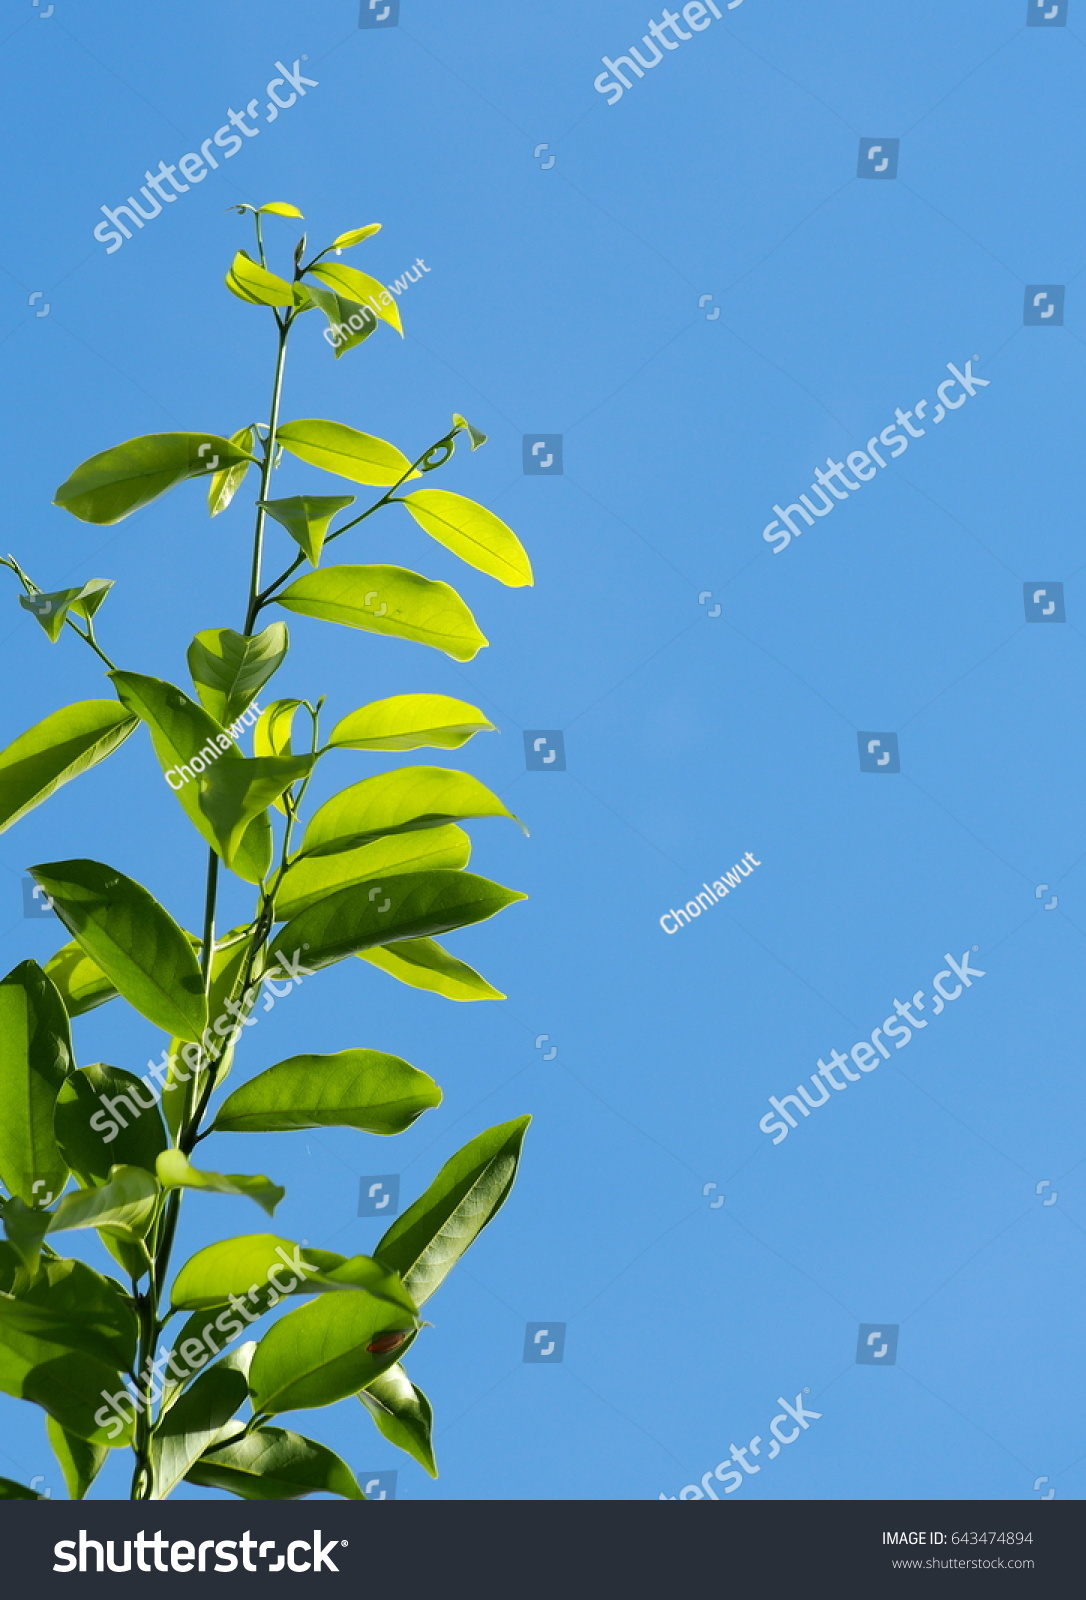 Large creeping plant tropical zone yellow stock photo royalty free large creeping plant in tropical zone with yellow aroma flower annonaceae artabotrys hexapetalus izmirmasajfo